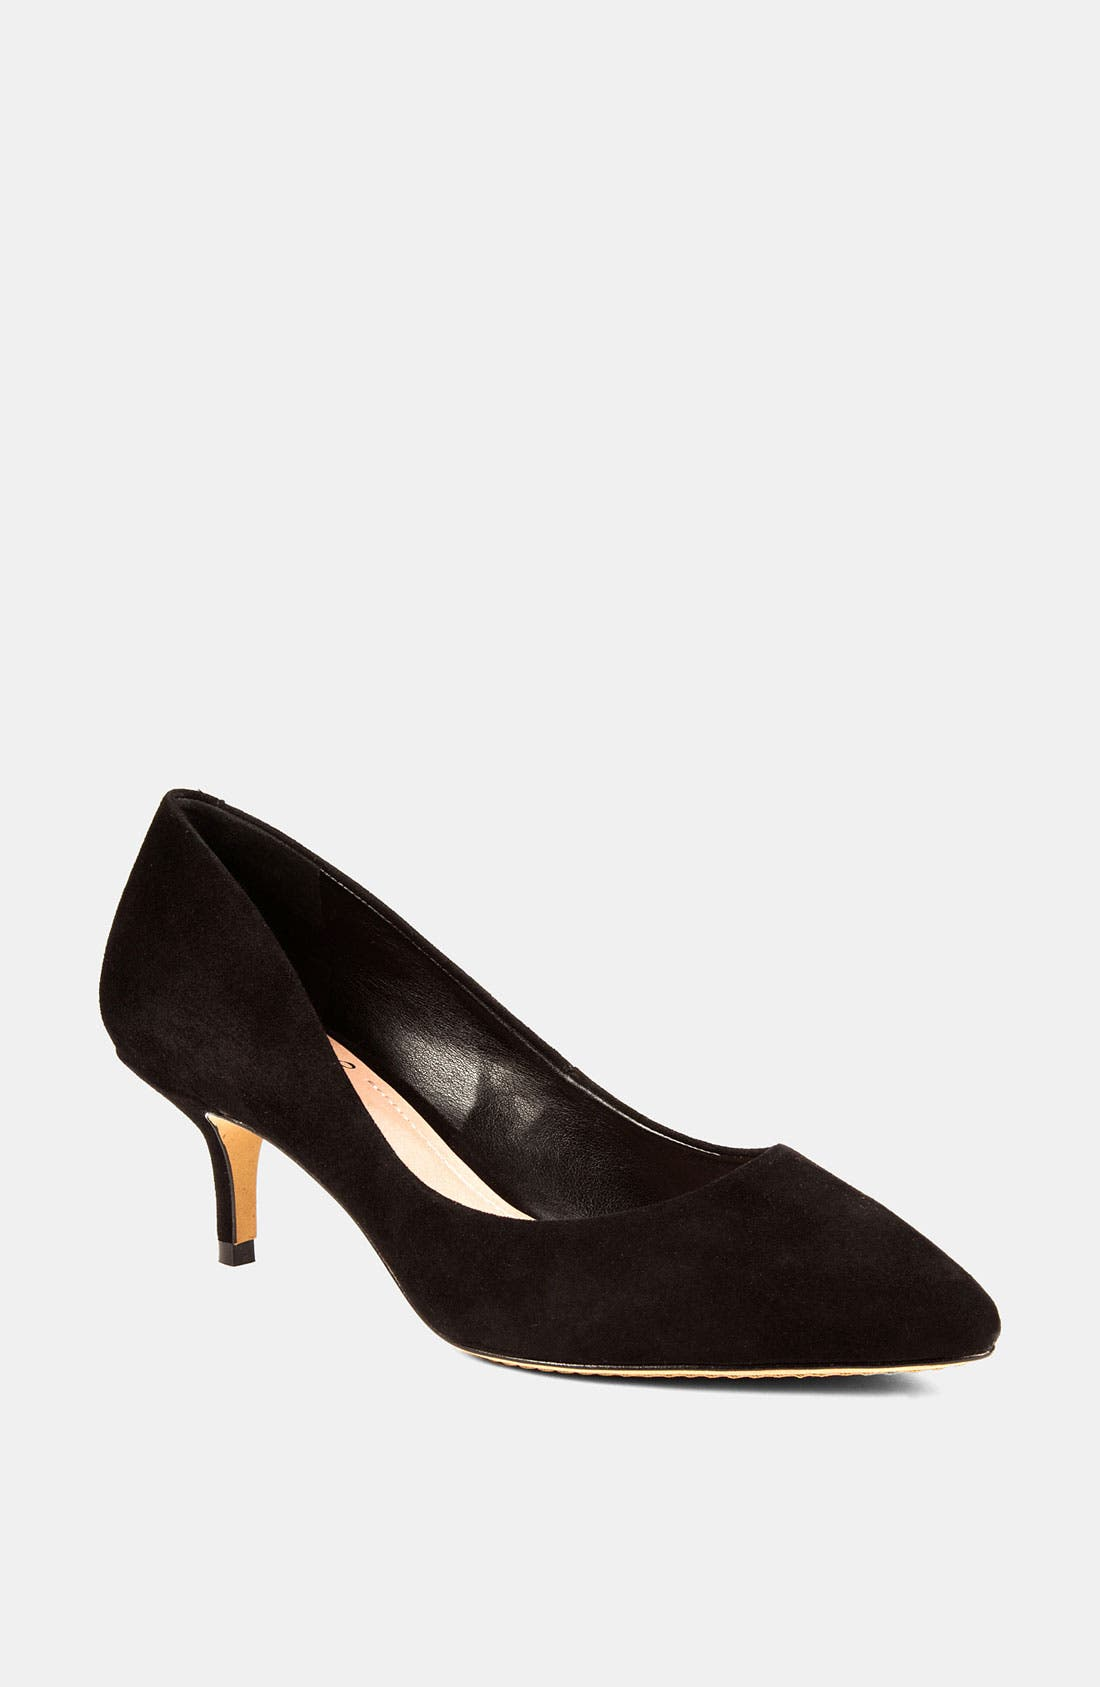 Main Image - Vince Camuto 'Goldie' Pump